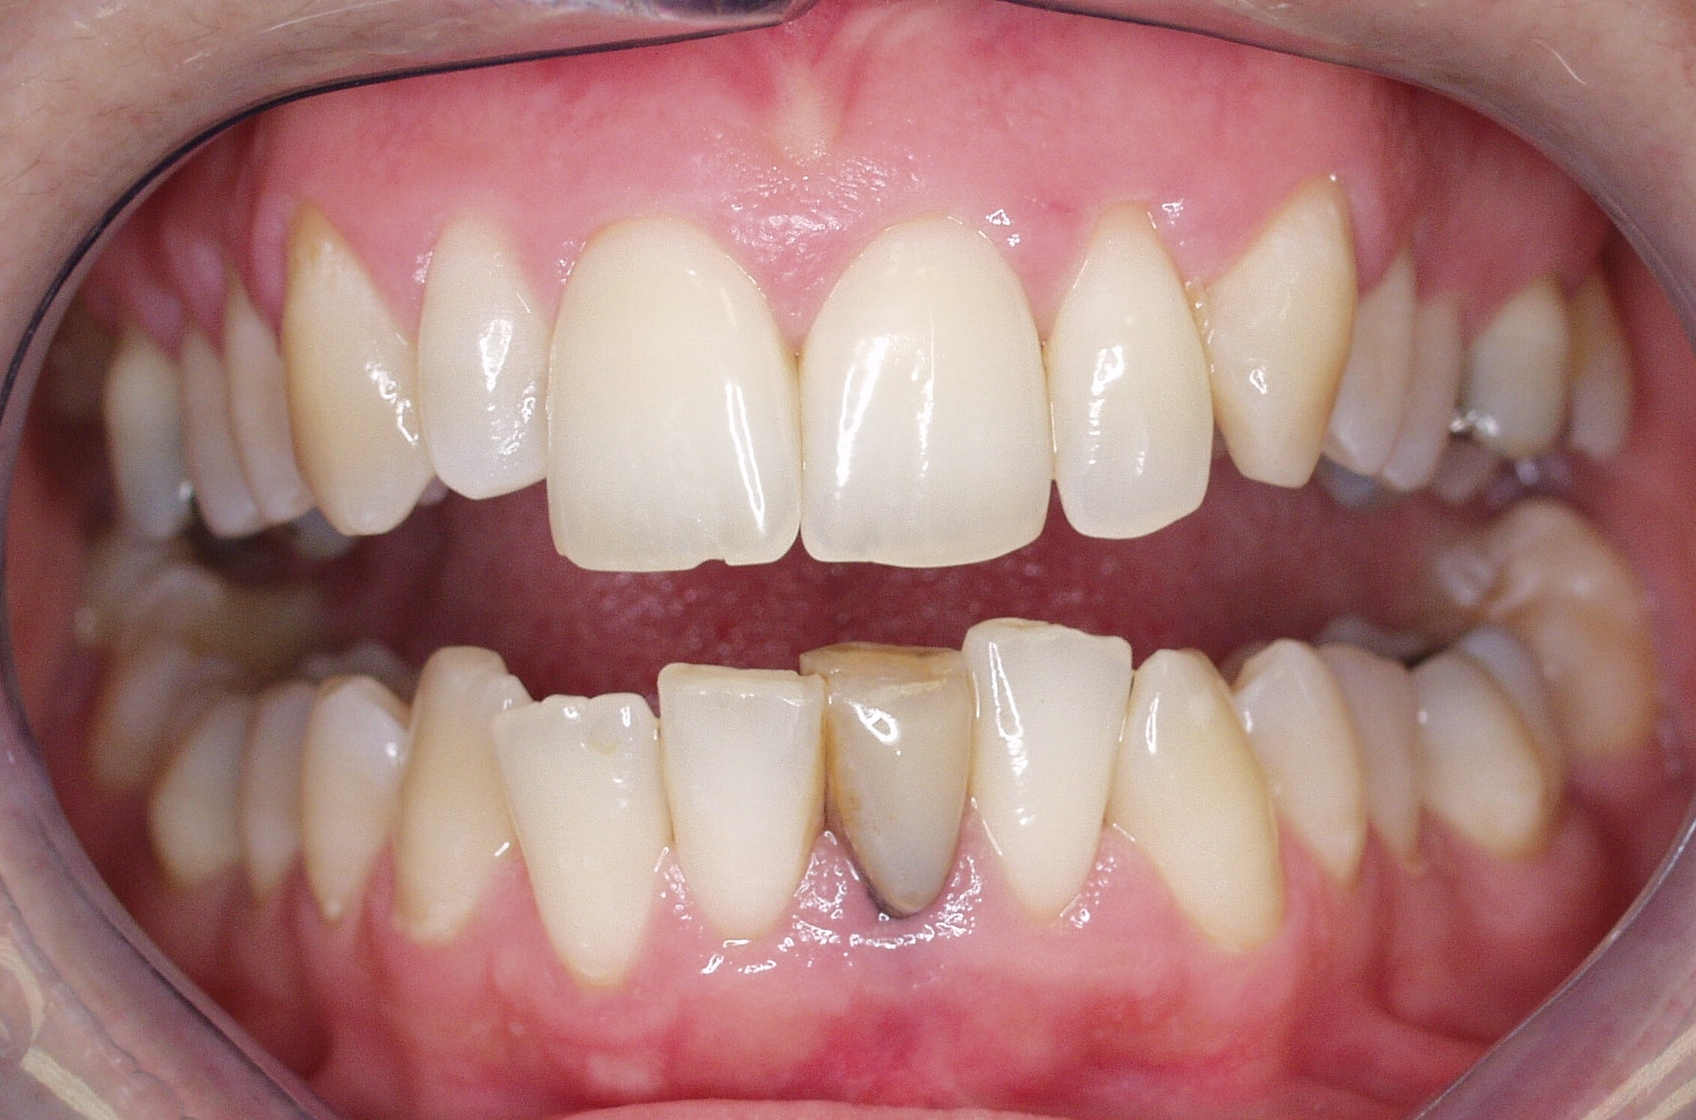 Patient's front lower tooth became damanged beyond repair